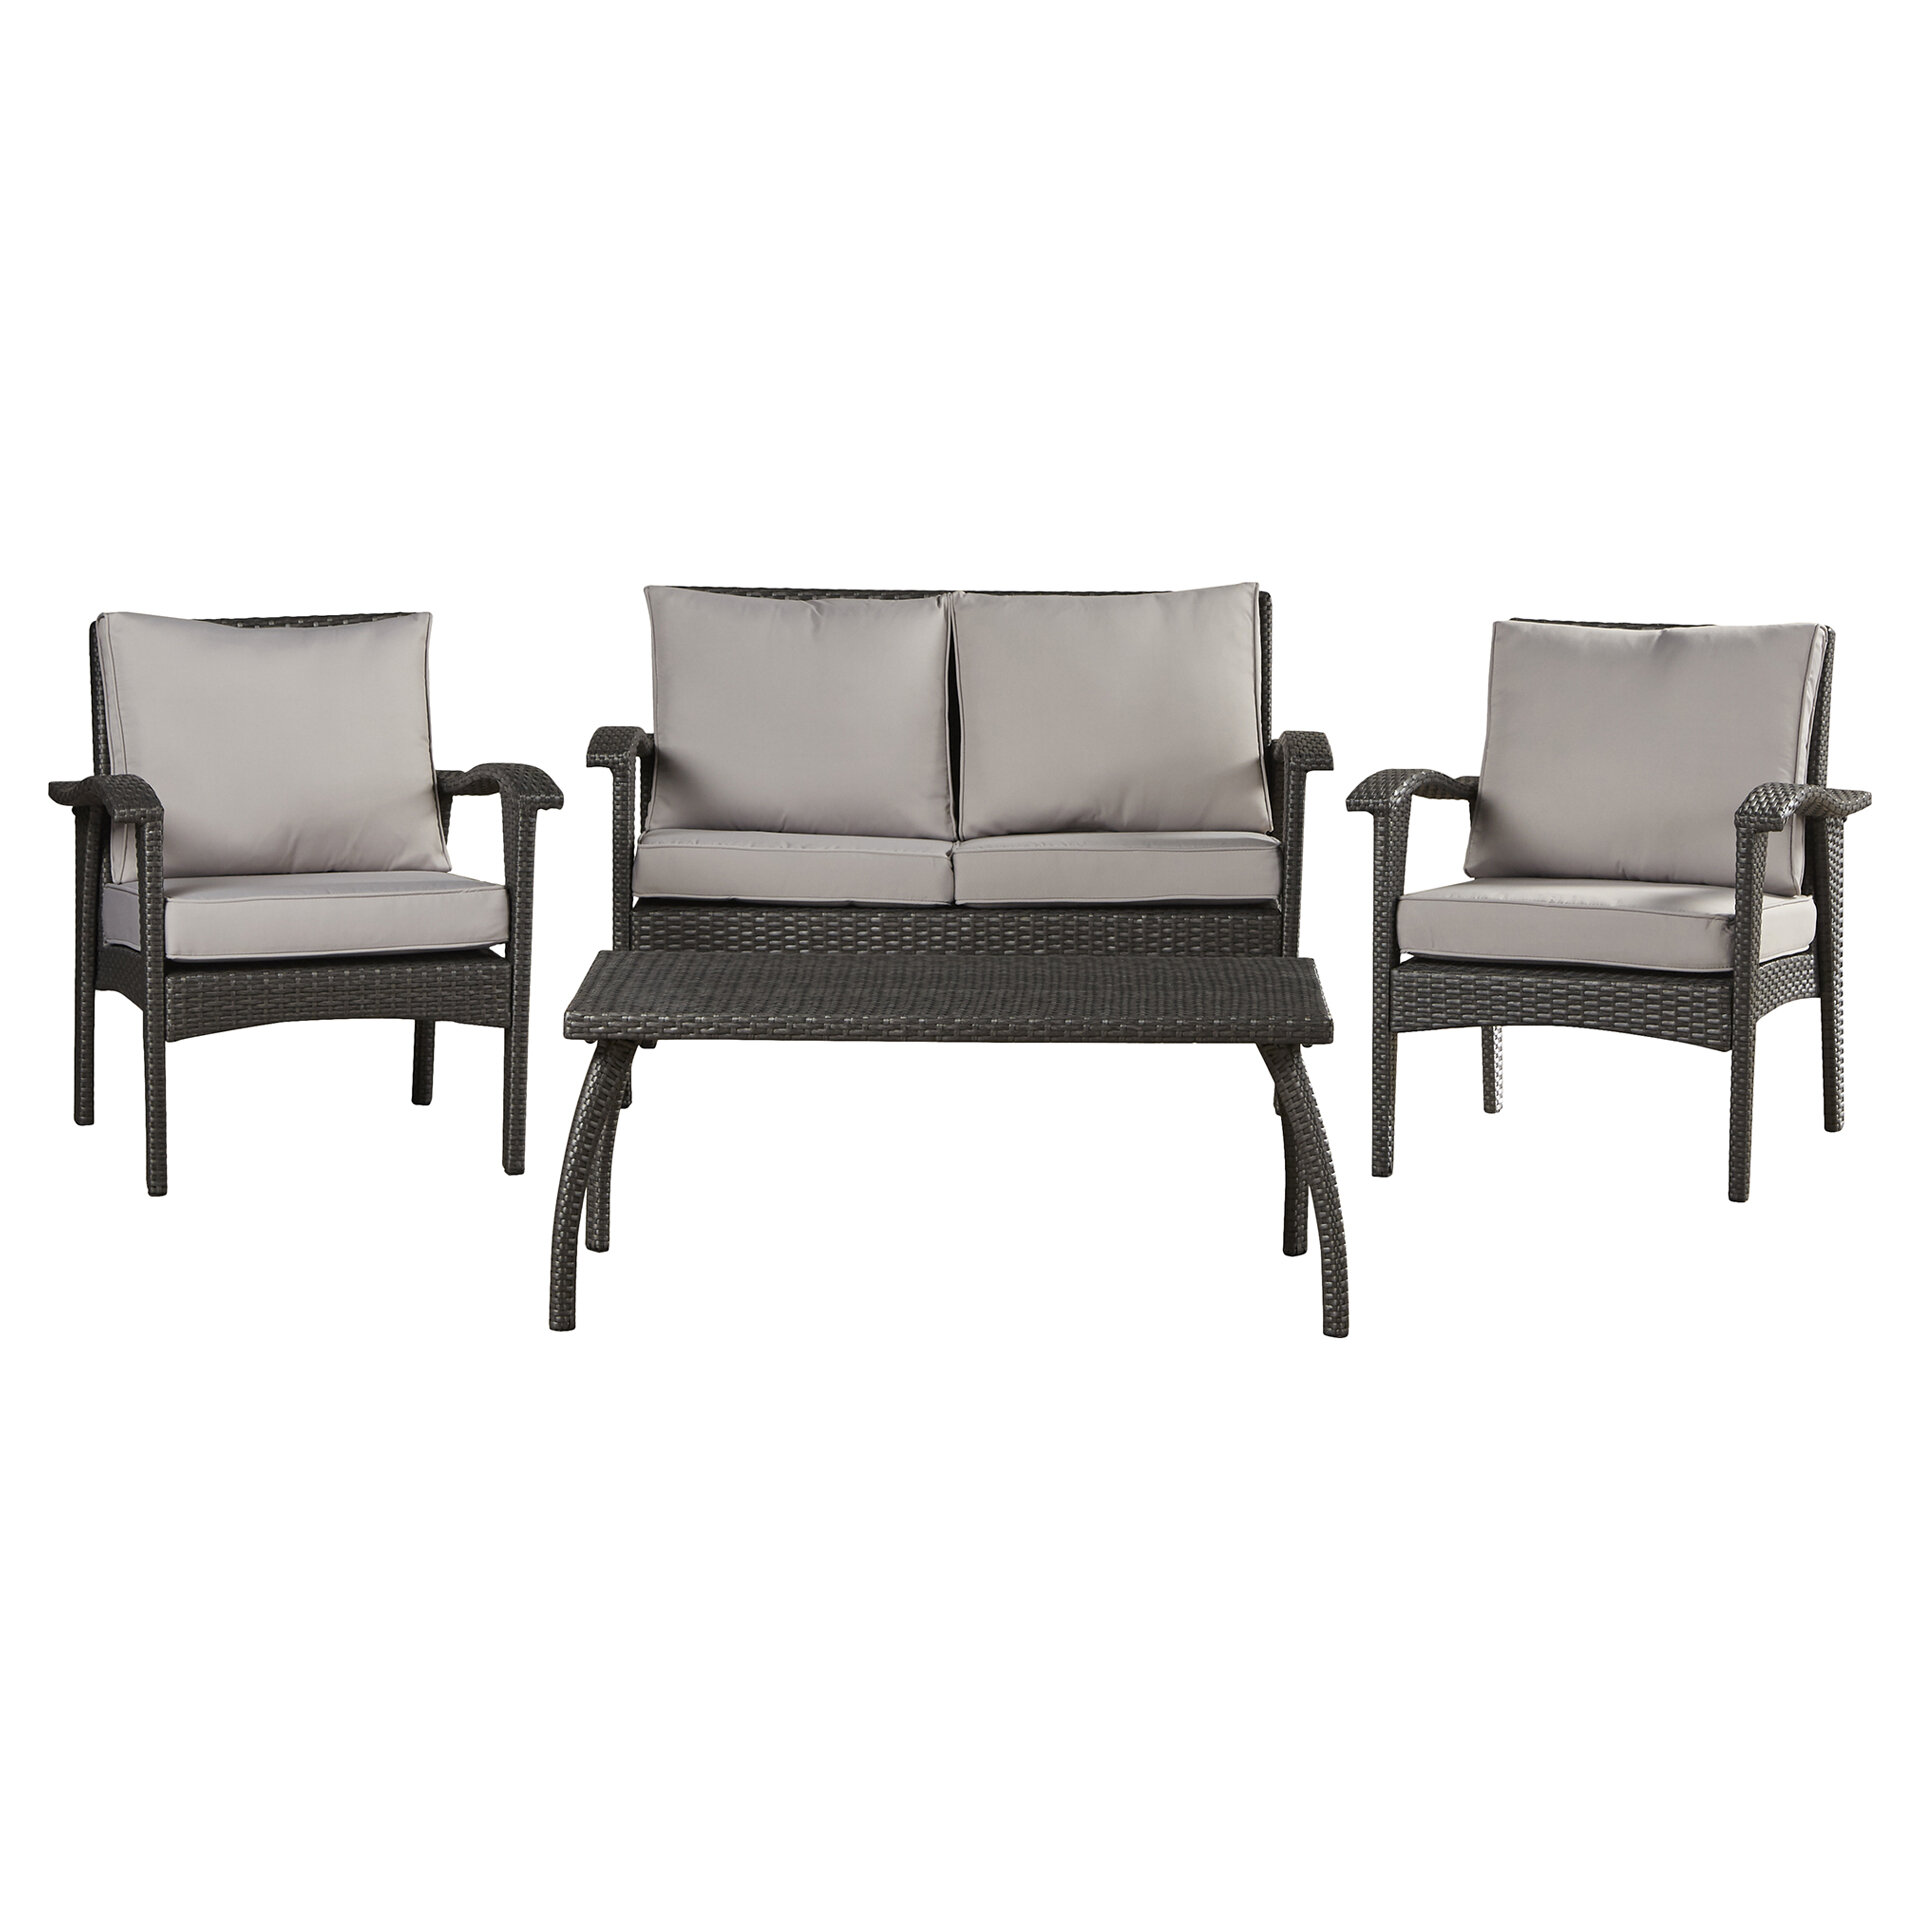 Three Posts Guilford 4 Piece Rattan Sofa Seating Group With Cushions Reviews Wayfair